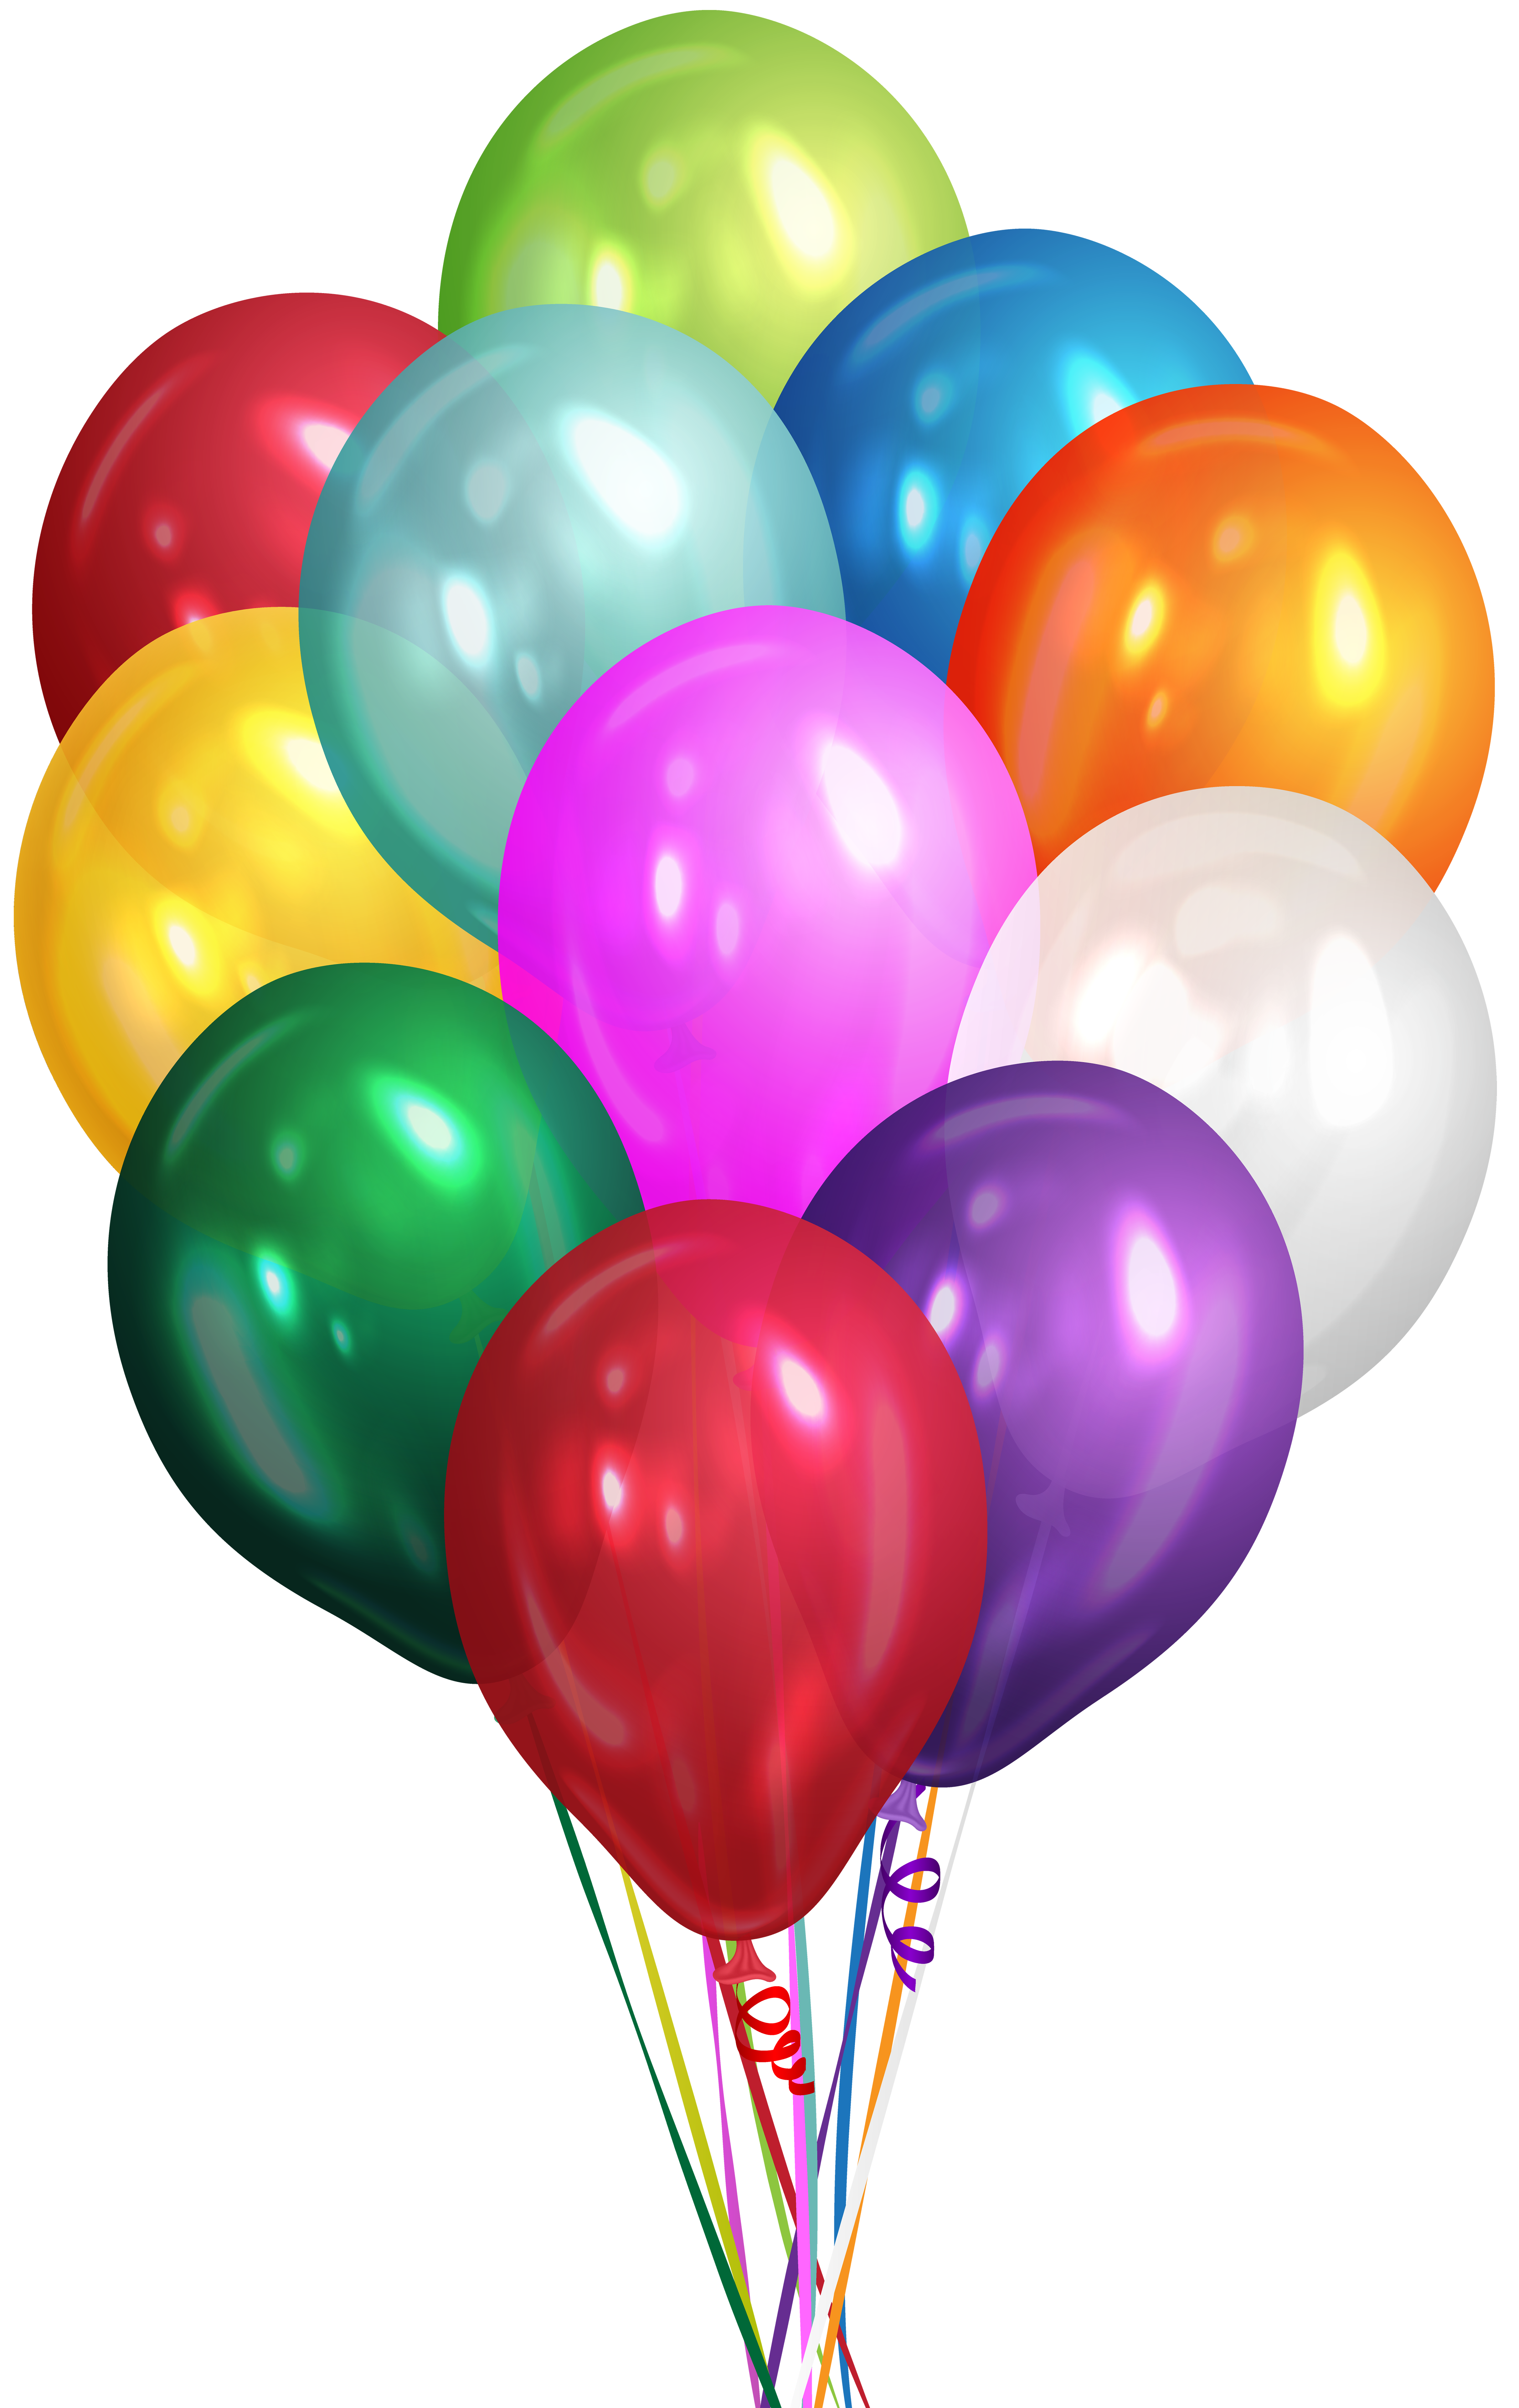 Ballon drawing balloon cluster. Collection of free balloons